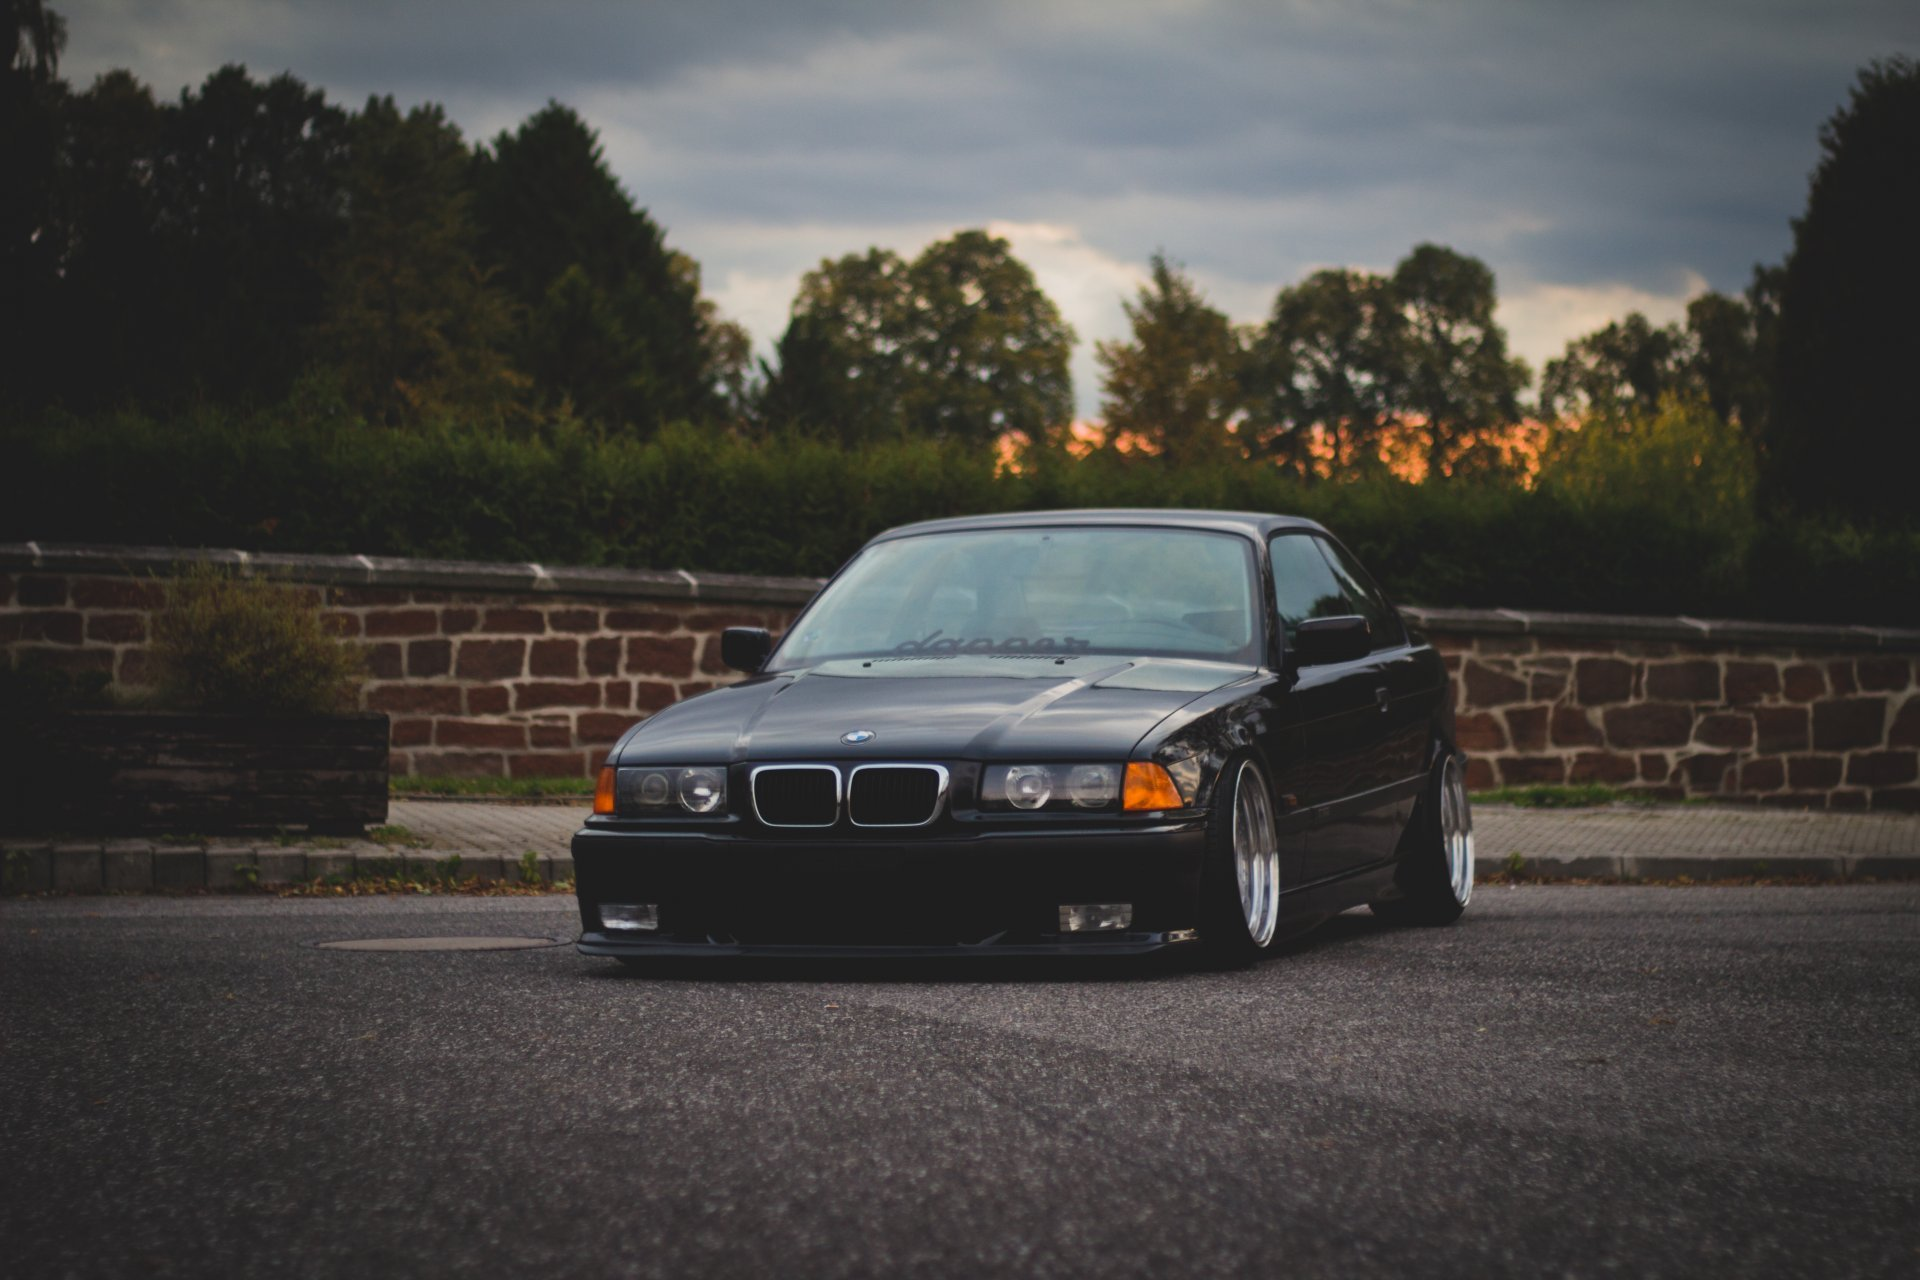 Bmw E36 Wallpaper Hd 1920x1280 Wallpaper Teahub Io